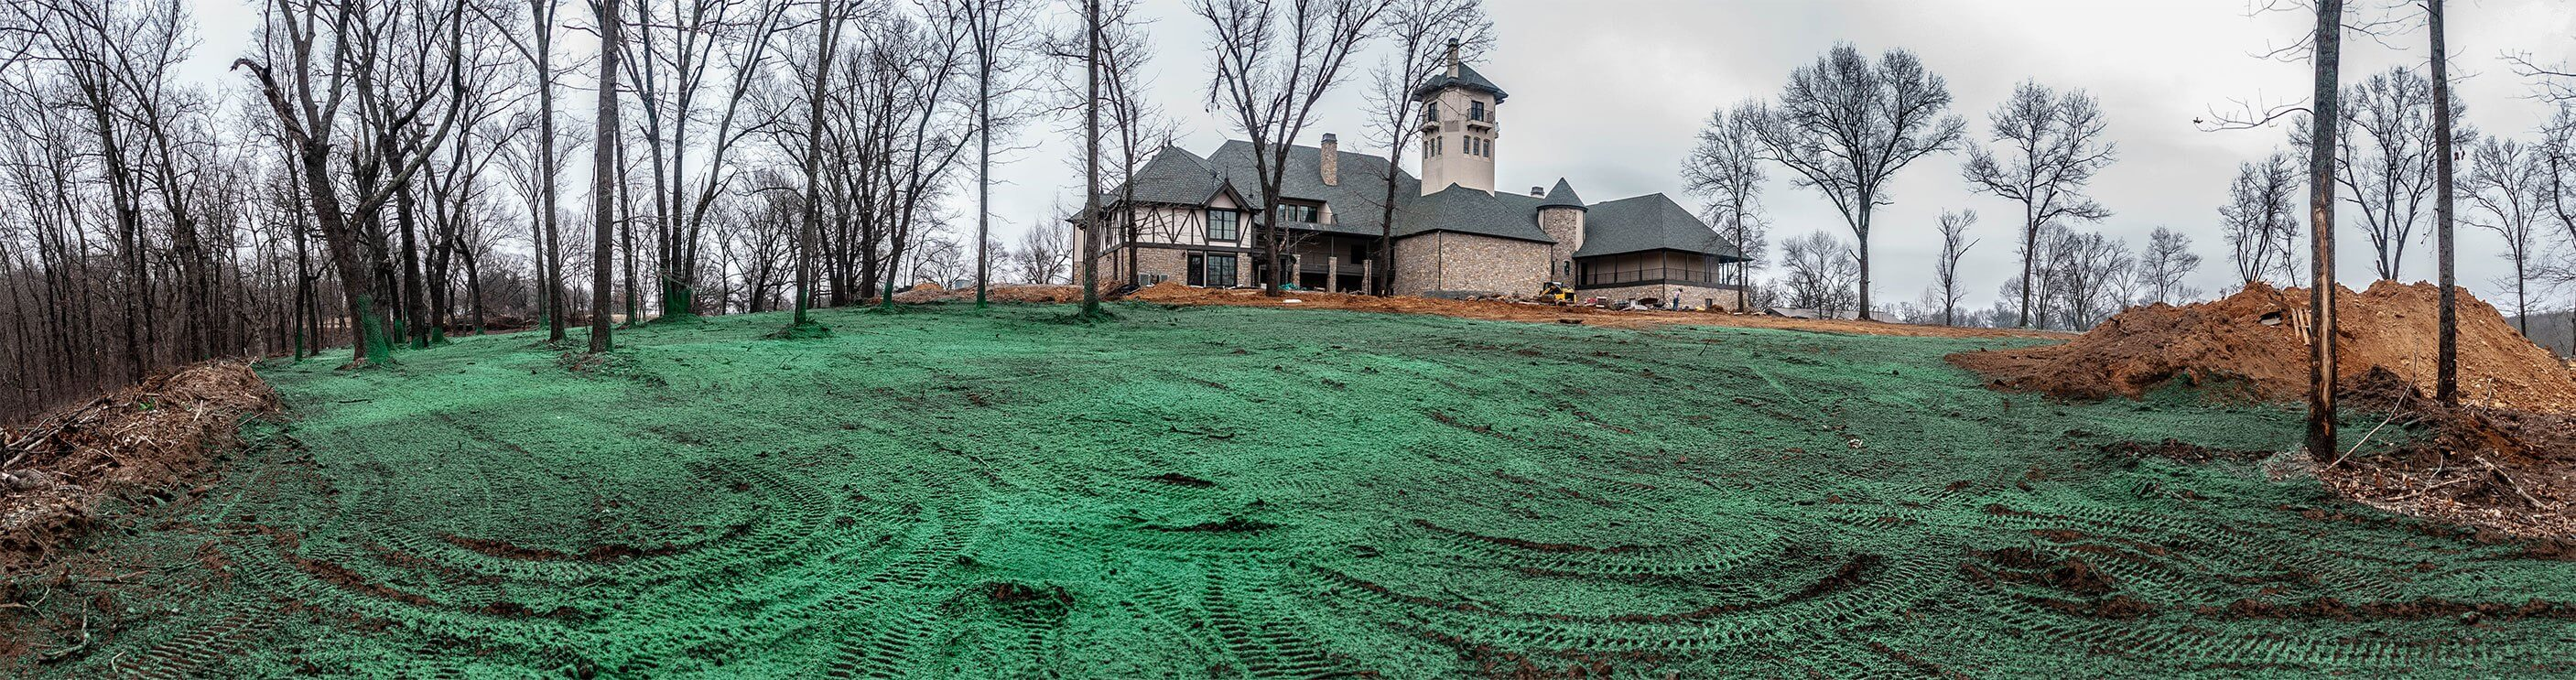 Oklahoma Residential Jobsite-March-2019-Panoramic view of property hydroseeded by Semper Fi Hydroseed